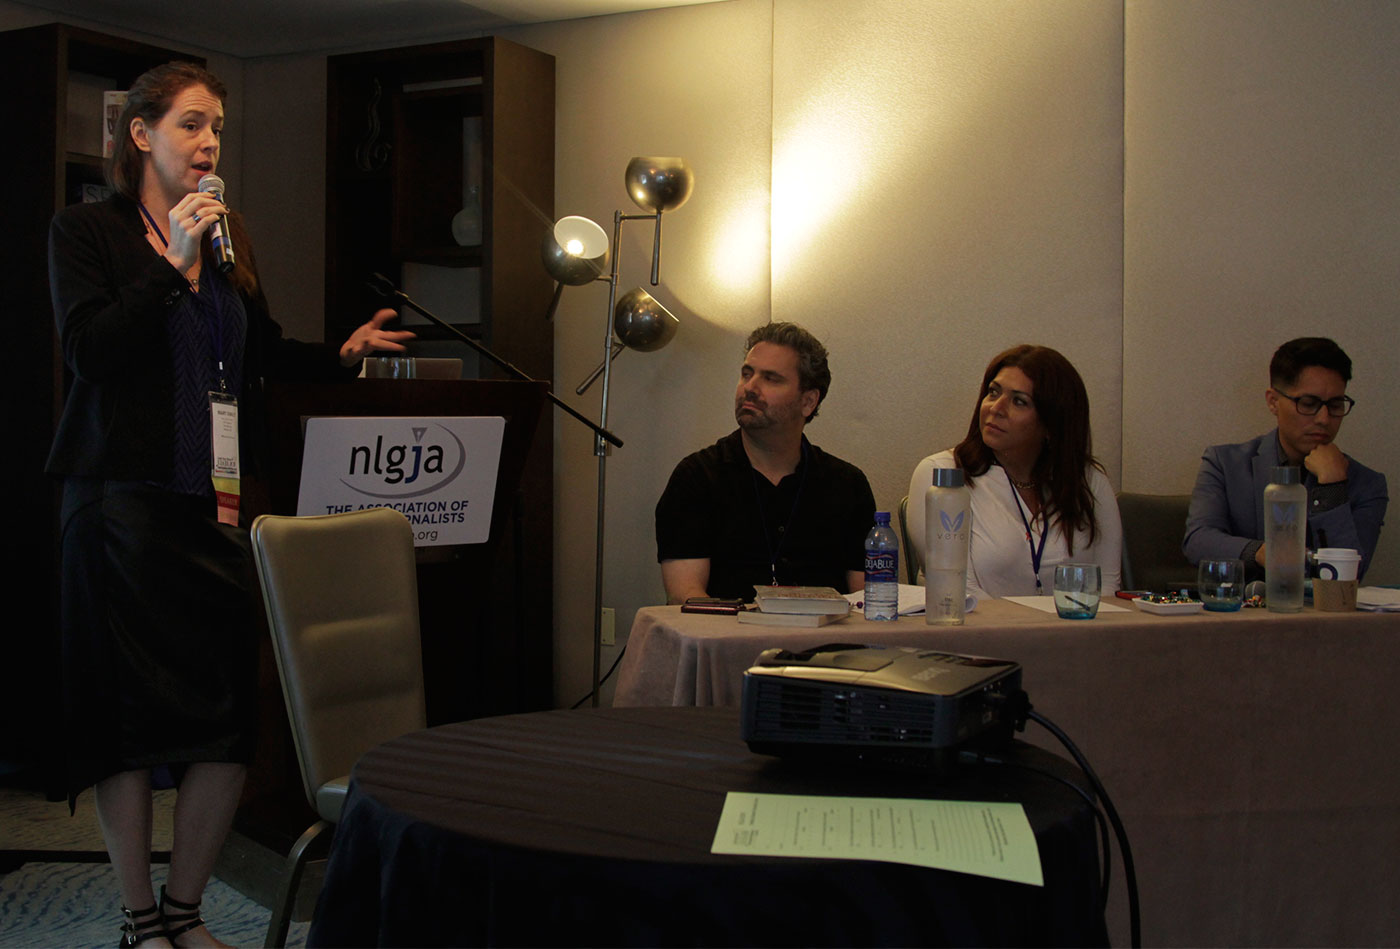 """A panel discussion on """"LGBTQ Sex Work in the News: Facts and Fairness, Not Sensationalism"""" at the Association of LGBTQ Journalists' annual national convention. (Photo by Siali Siaosi)"""